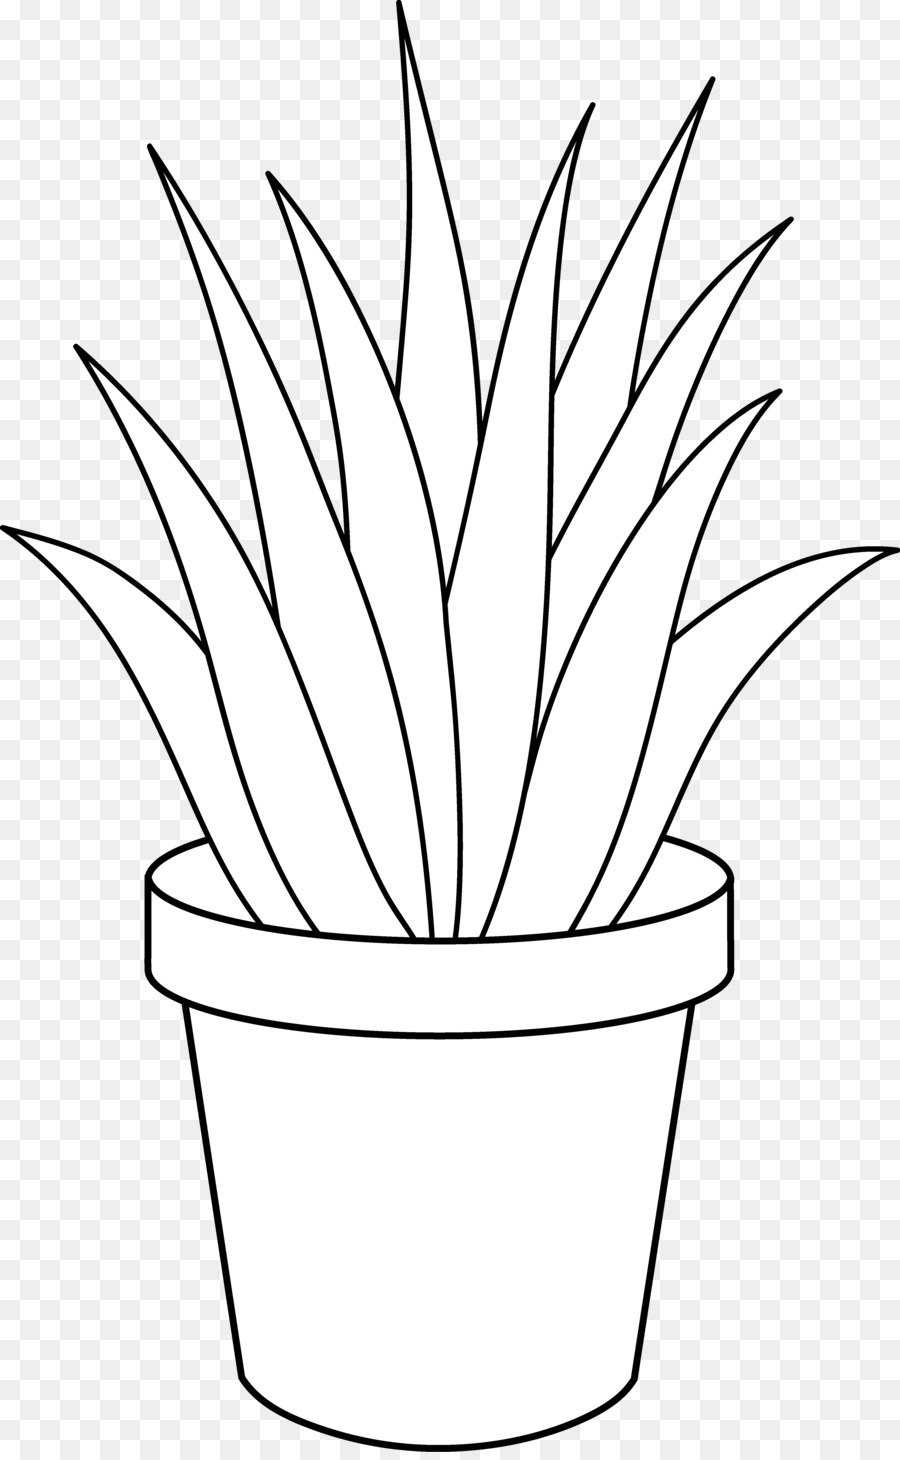 Plant white. Black and flower png